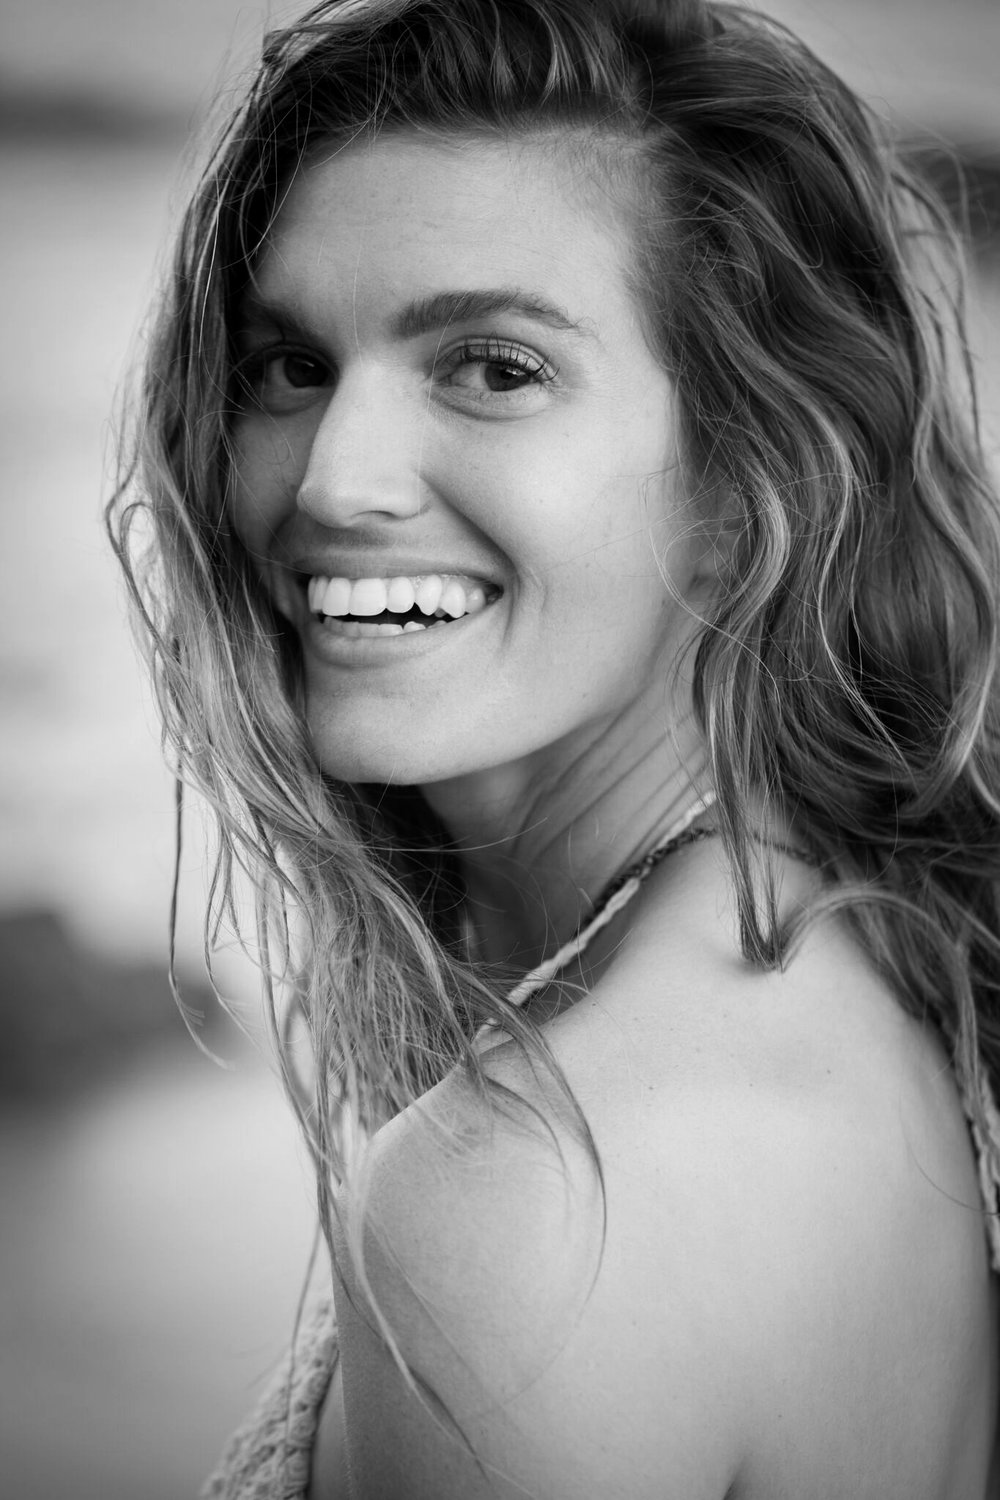 NAME : Rachel Fox LOCATION : Los Angeles, California SERVICES :∆ Guided Meditation ∆ Crystal Healing ∆ Ritual Construction ∆ Personal Advocate